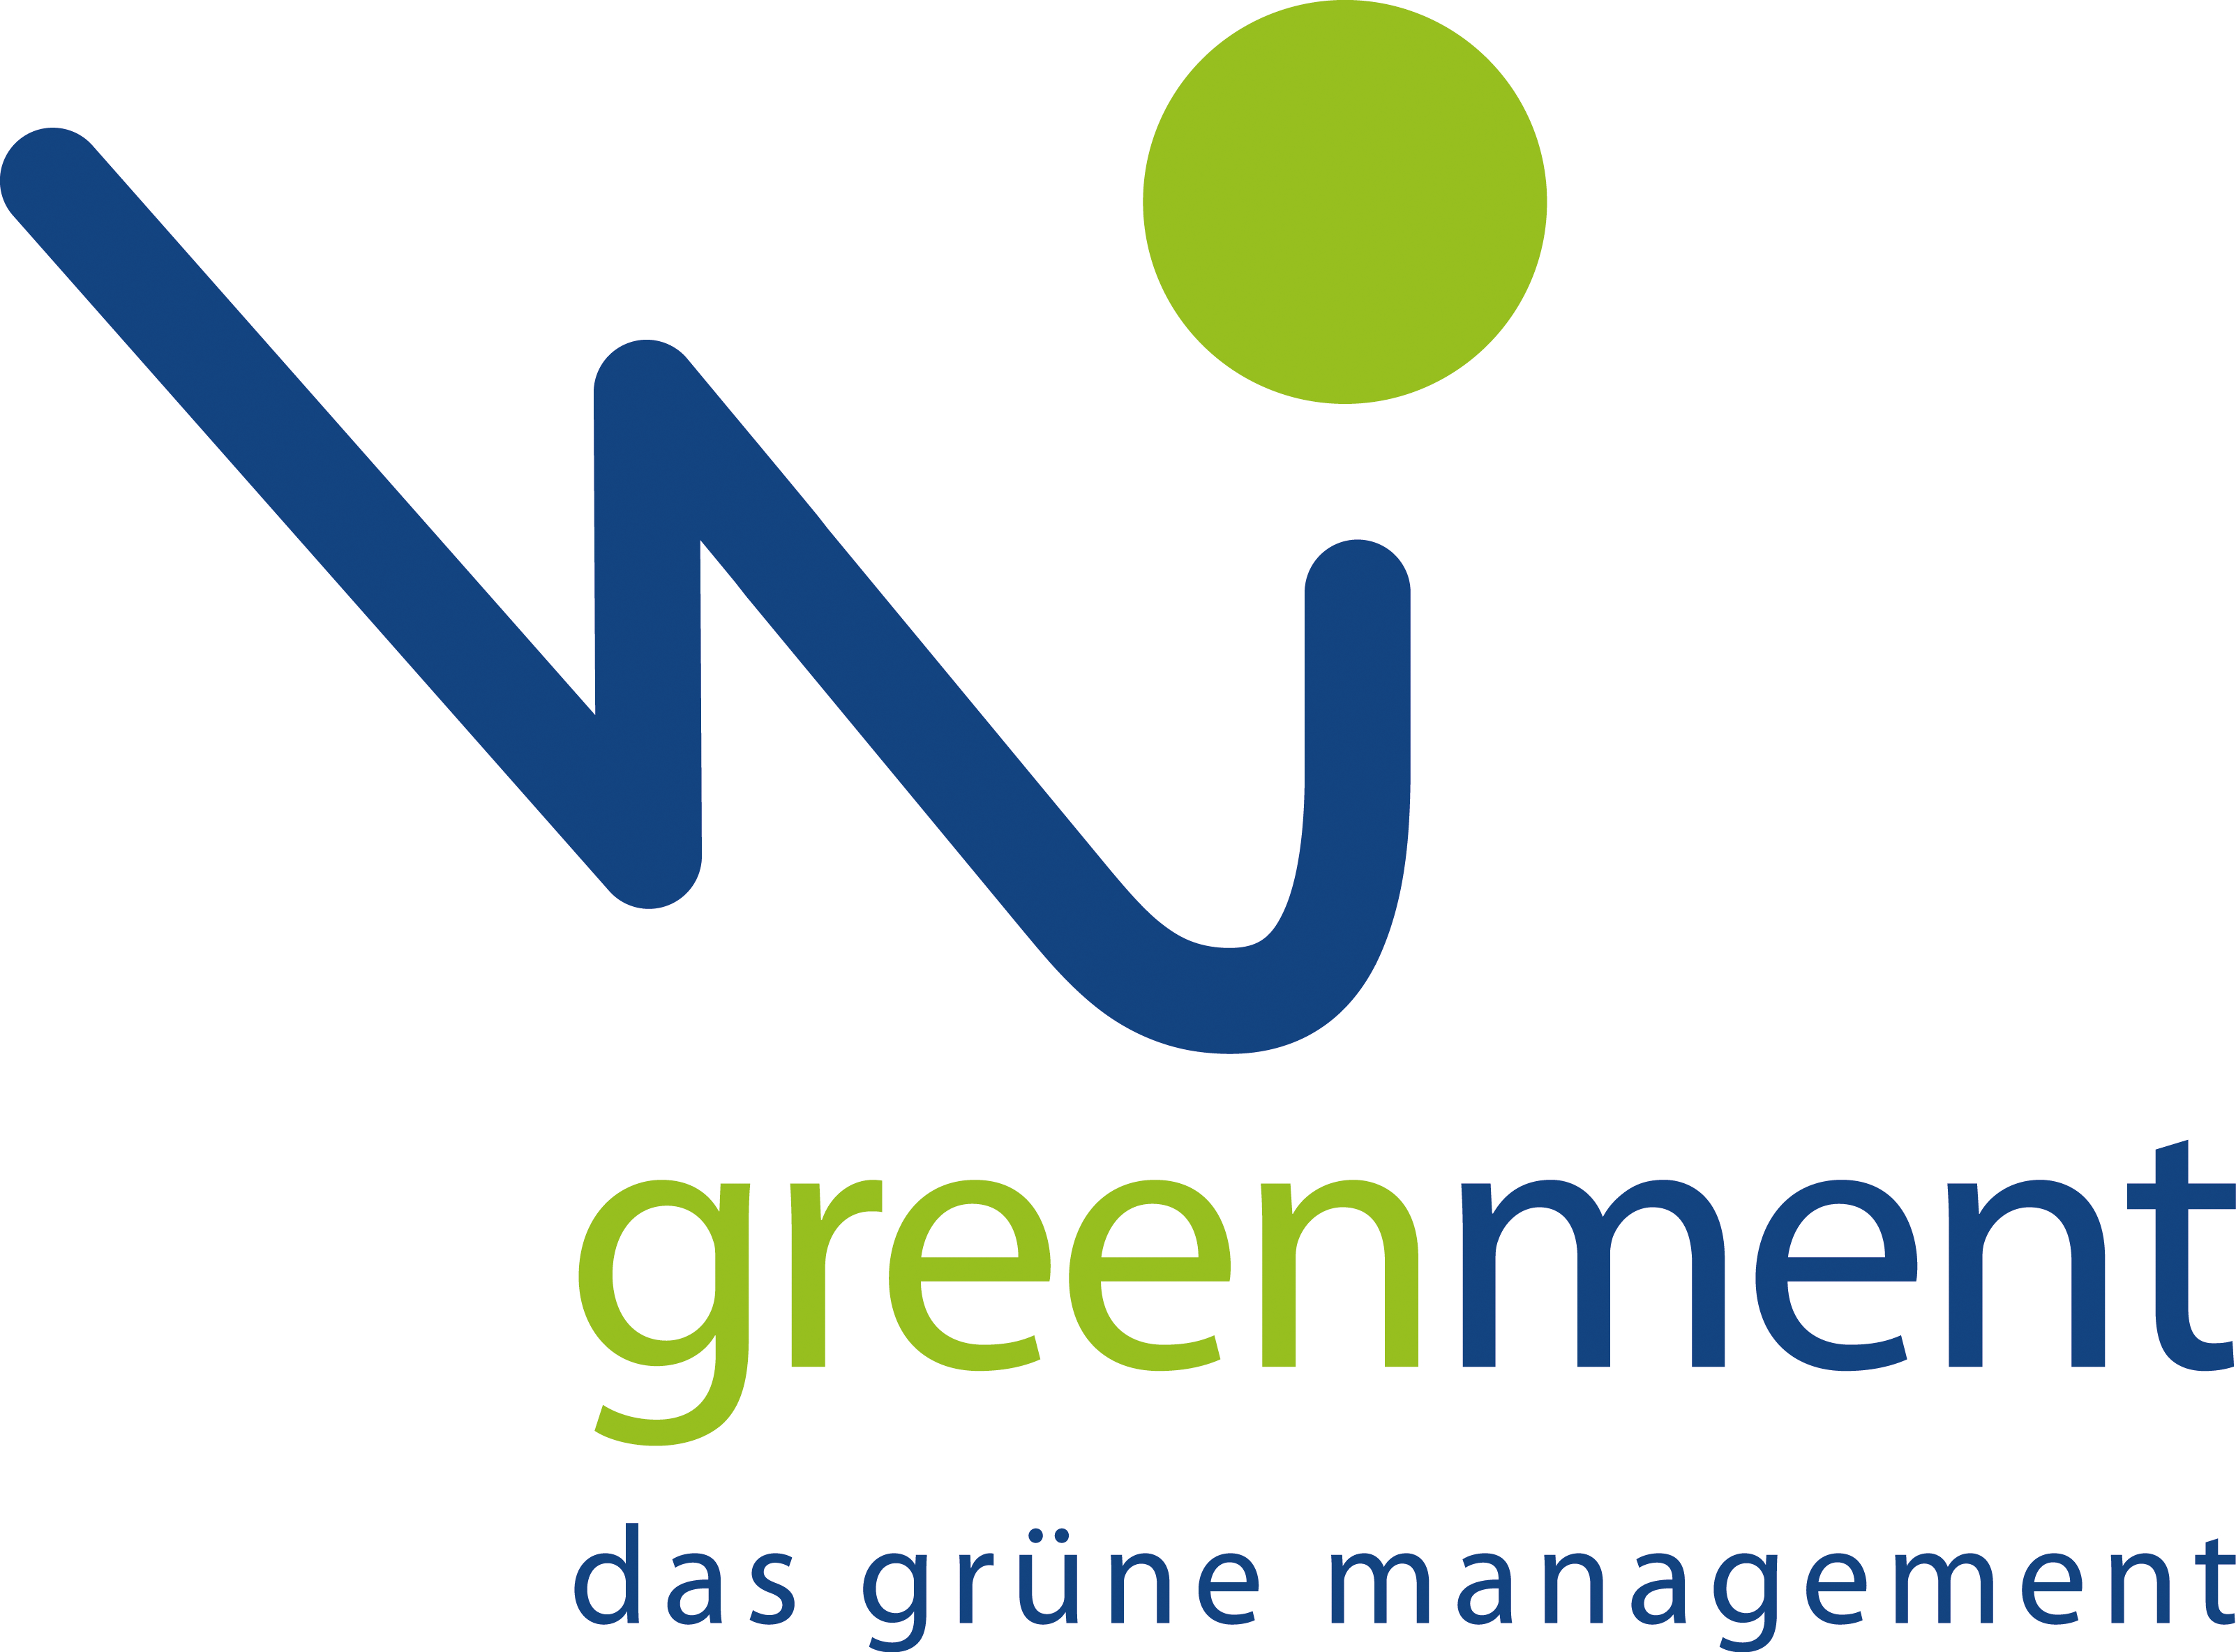 greenment - Das grüne Management logo